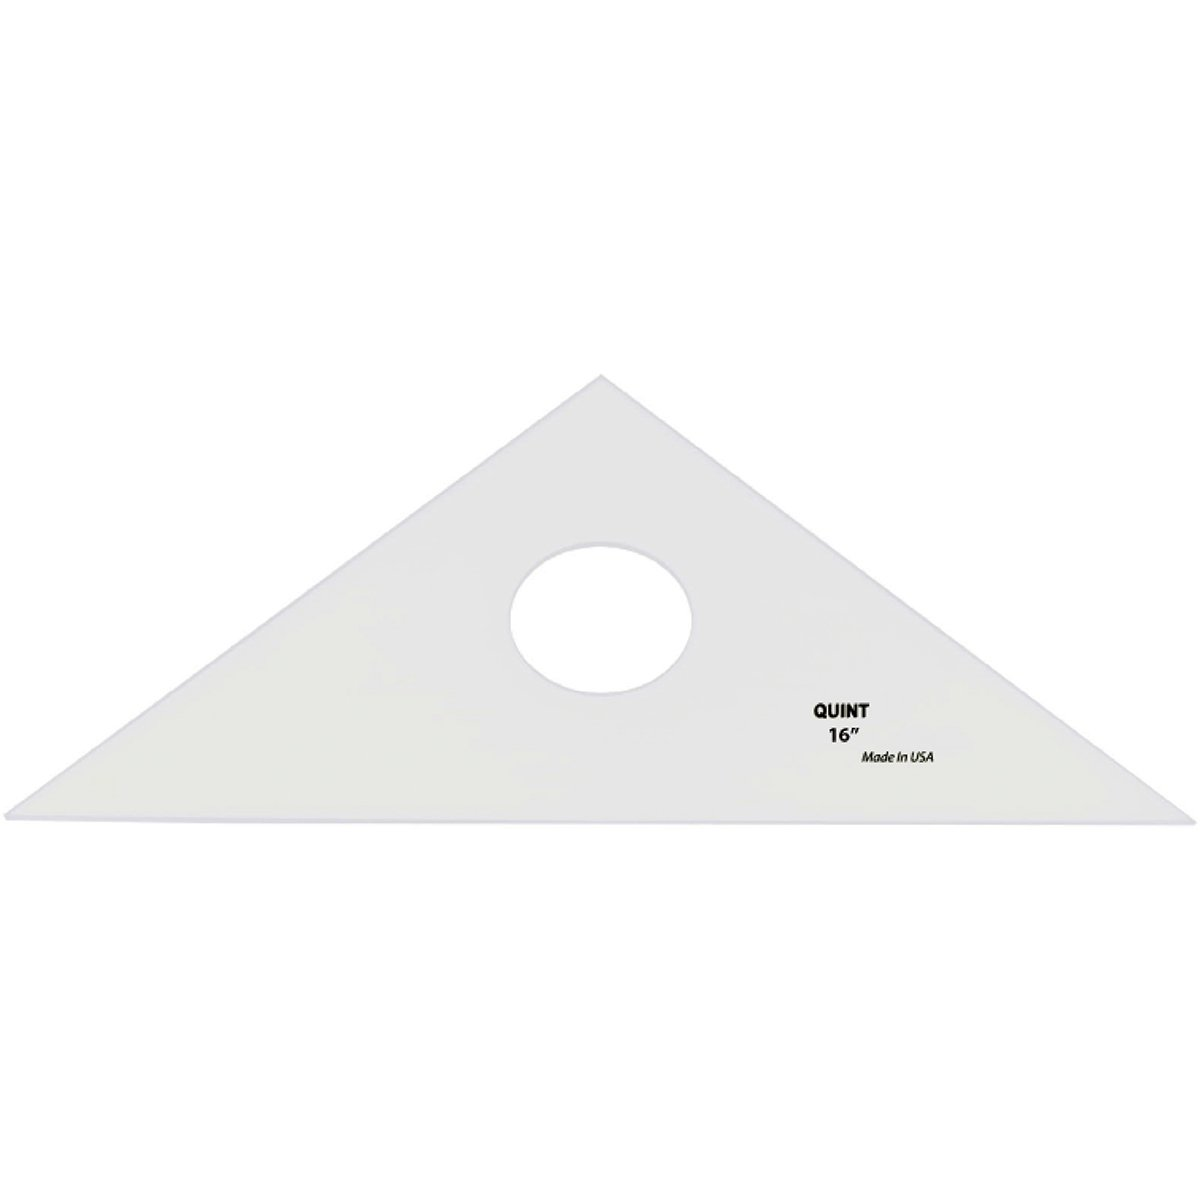 Quint Measuring Systems 45/90 Professional Plain Edge Clear Triangle, 16''